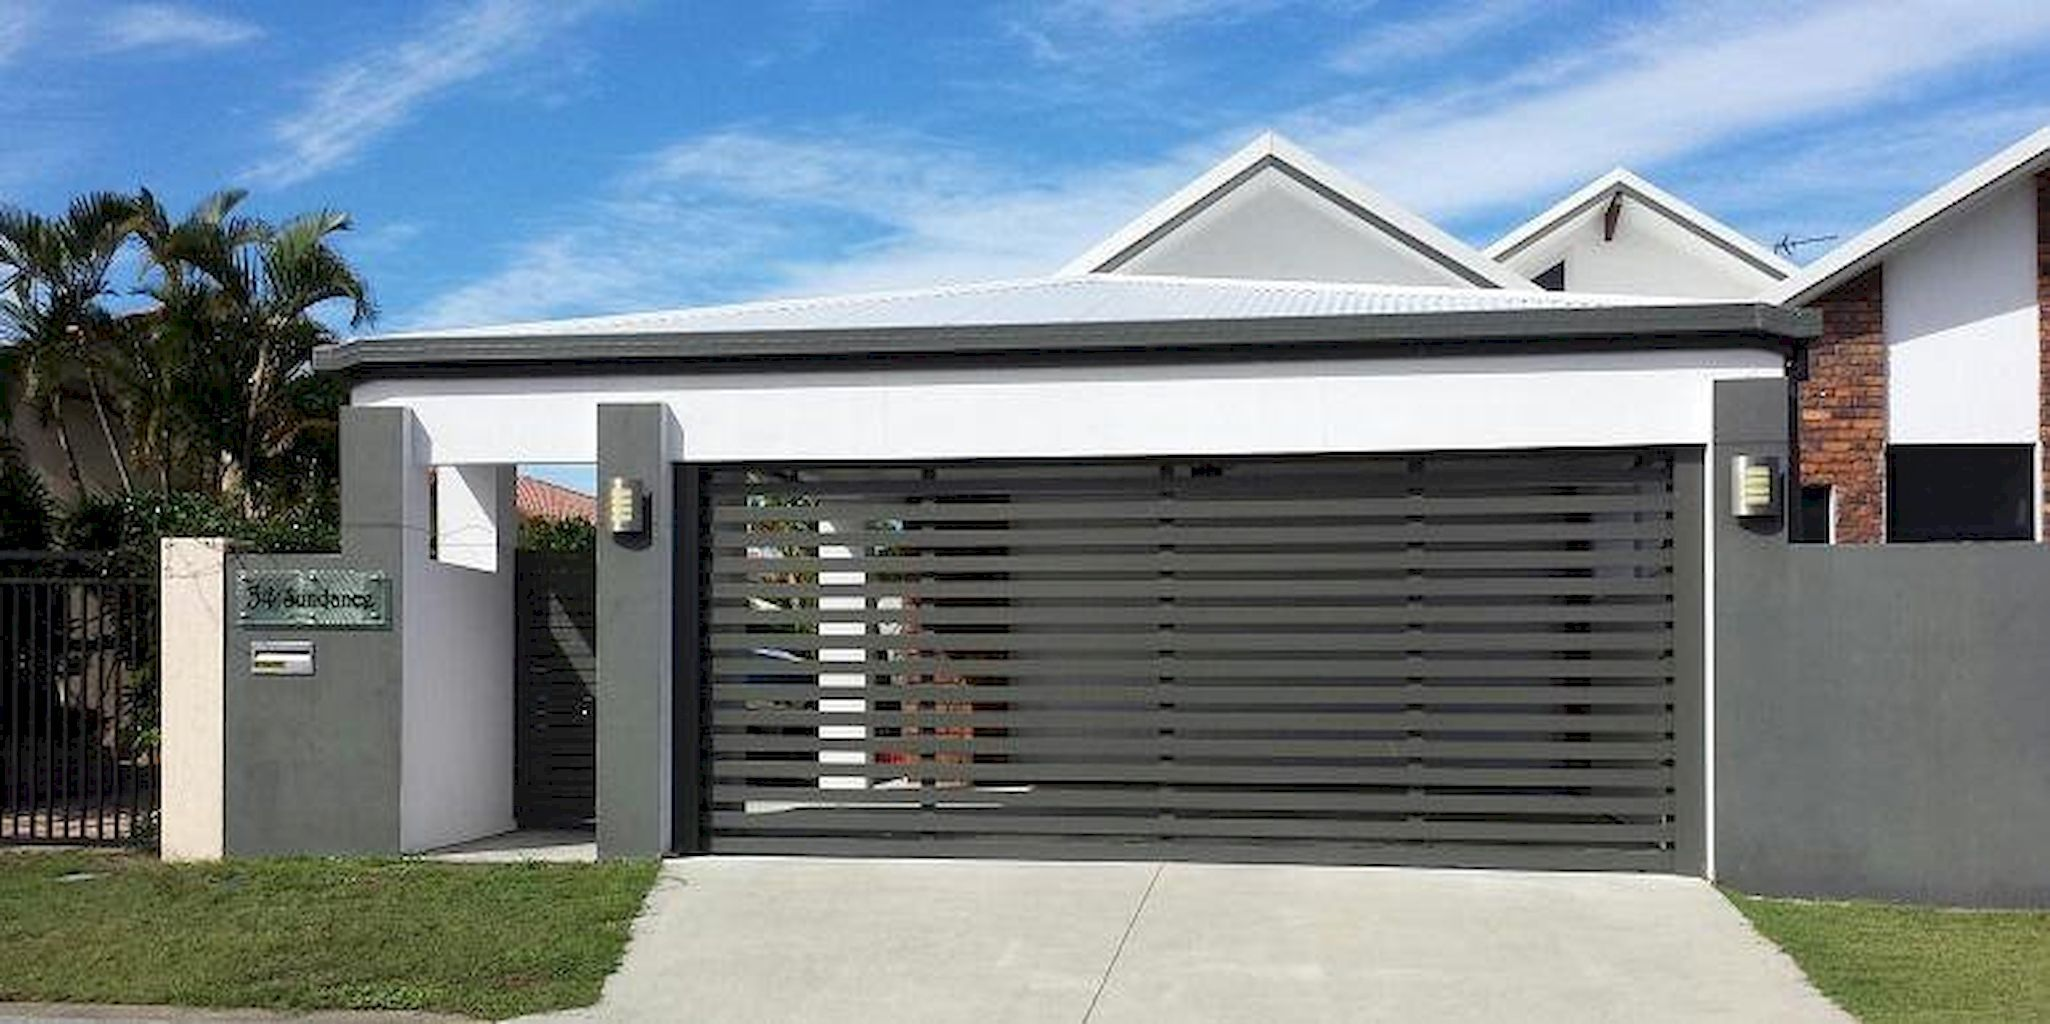 55 adorable modern carports garage designs ideas modern for Carport garage designs